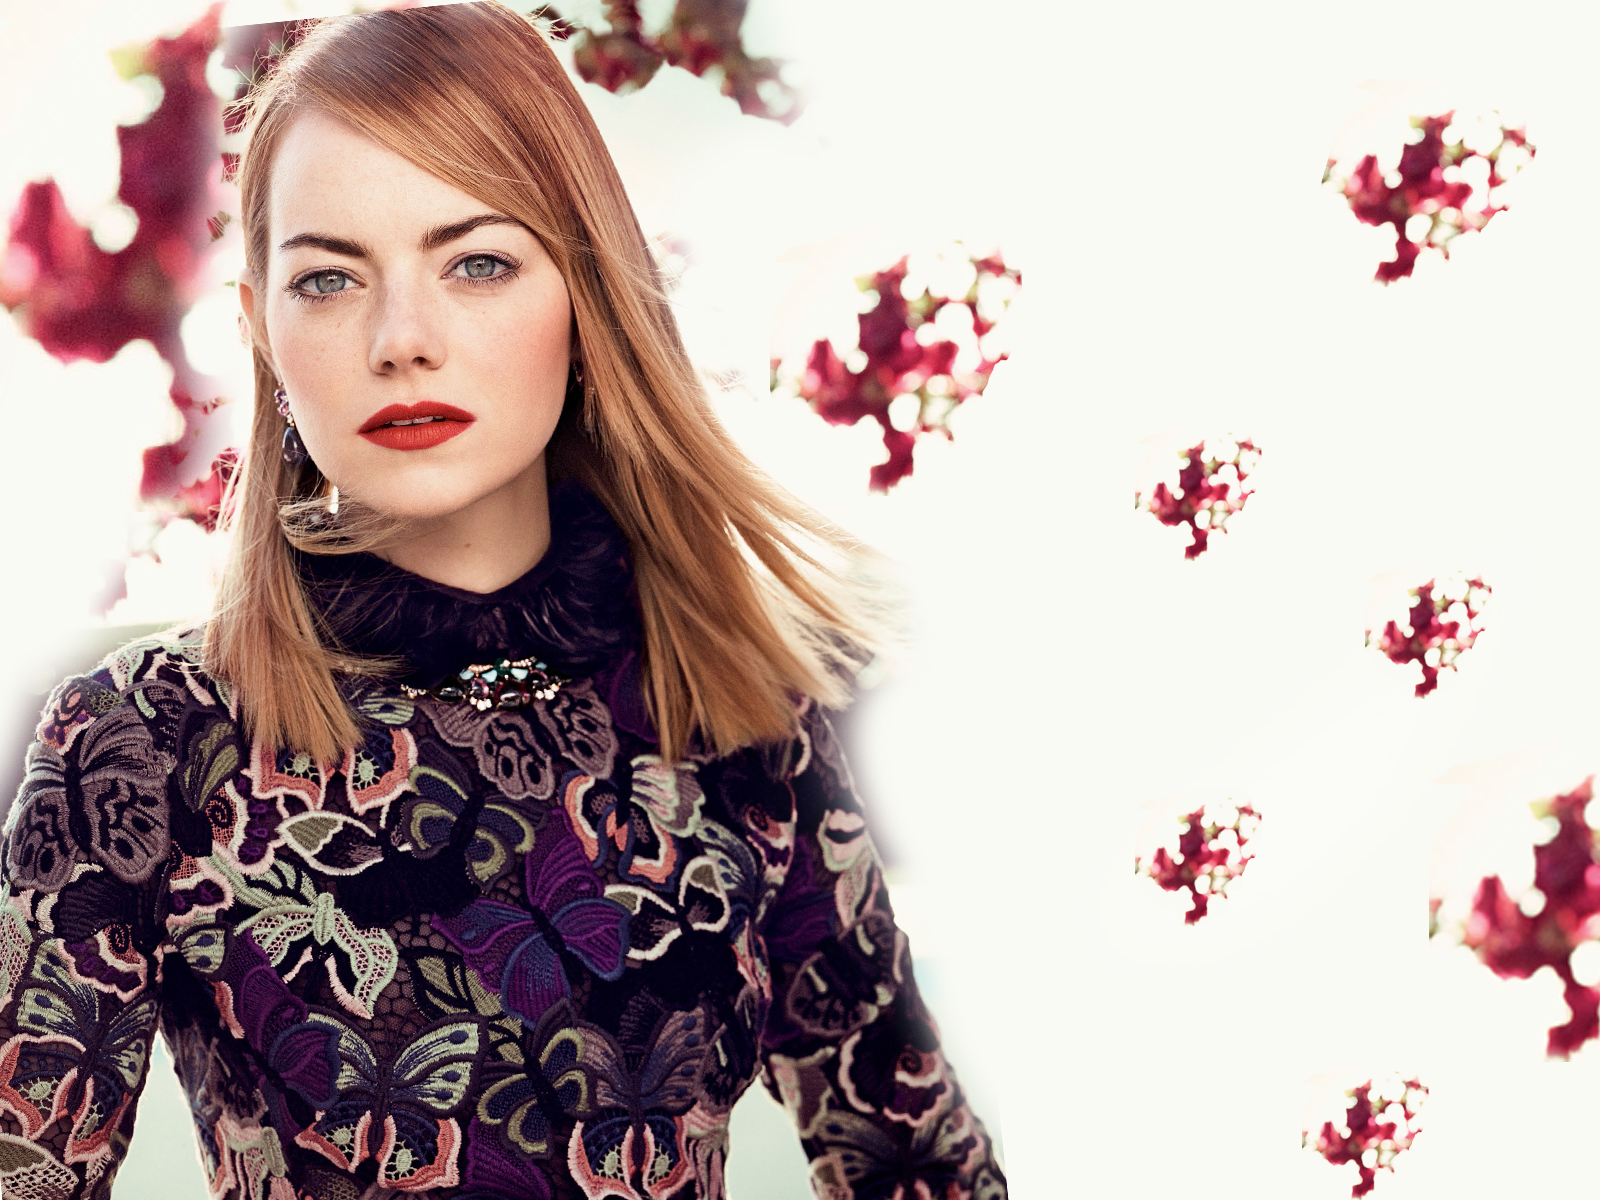 hd emma stone beautiful background design with cute face look pose desktop laptop free wallpaper